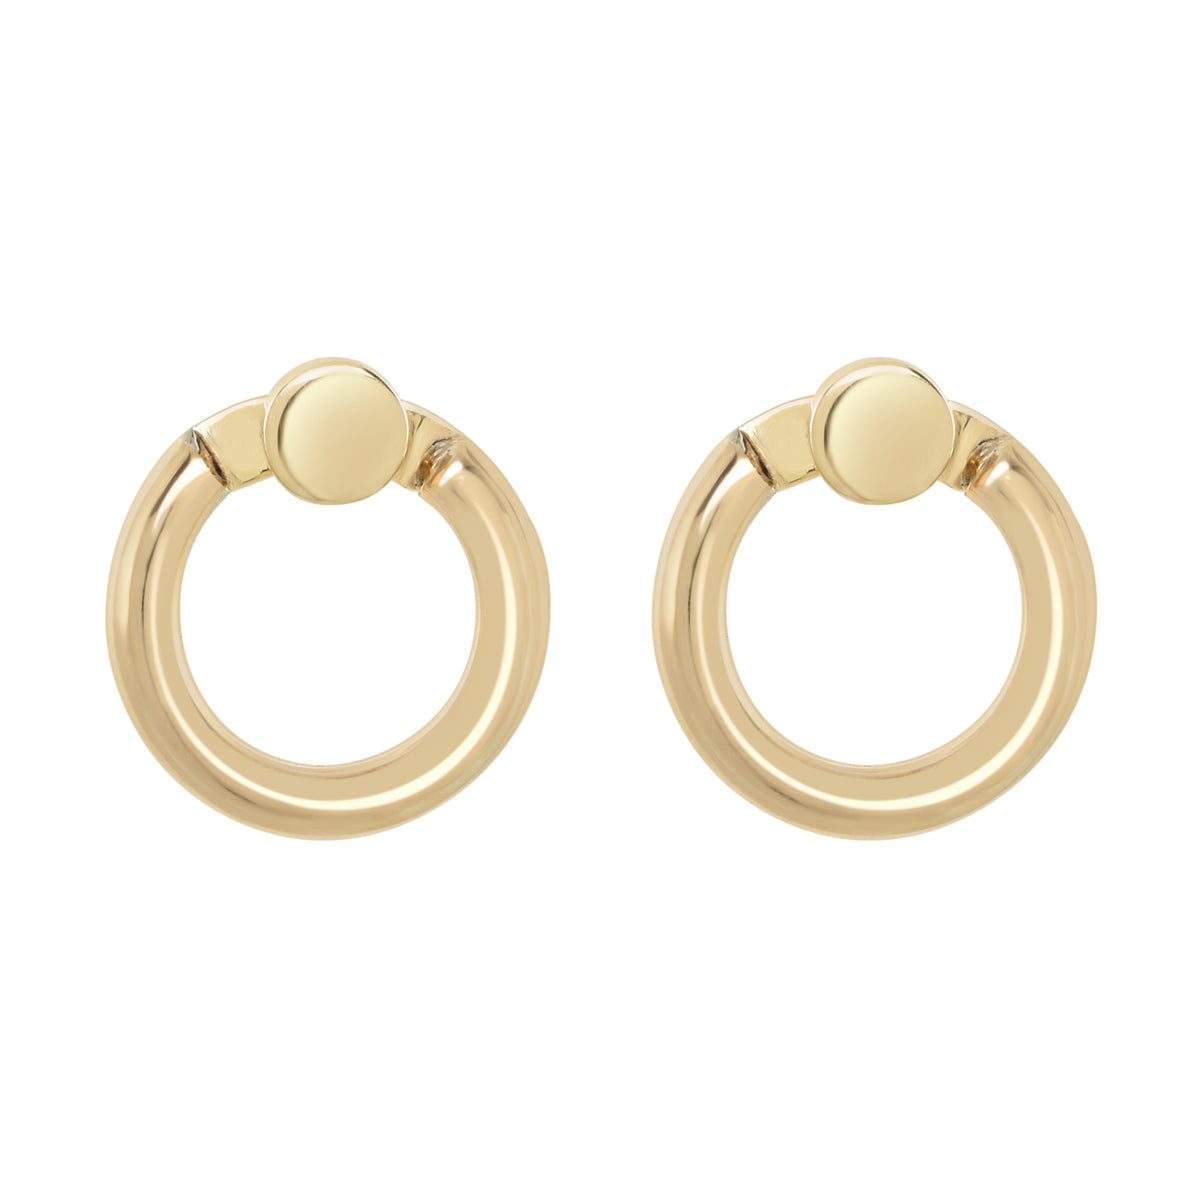 Gold Mini Eclipse Earrings - René Habie